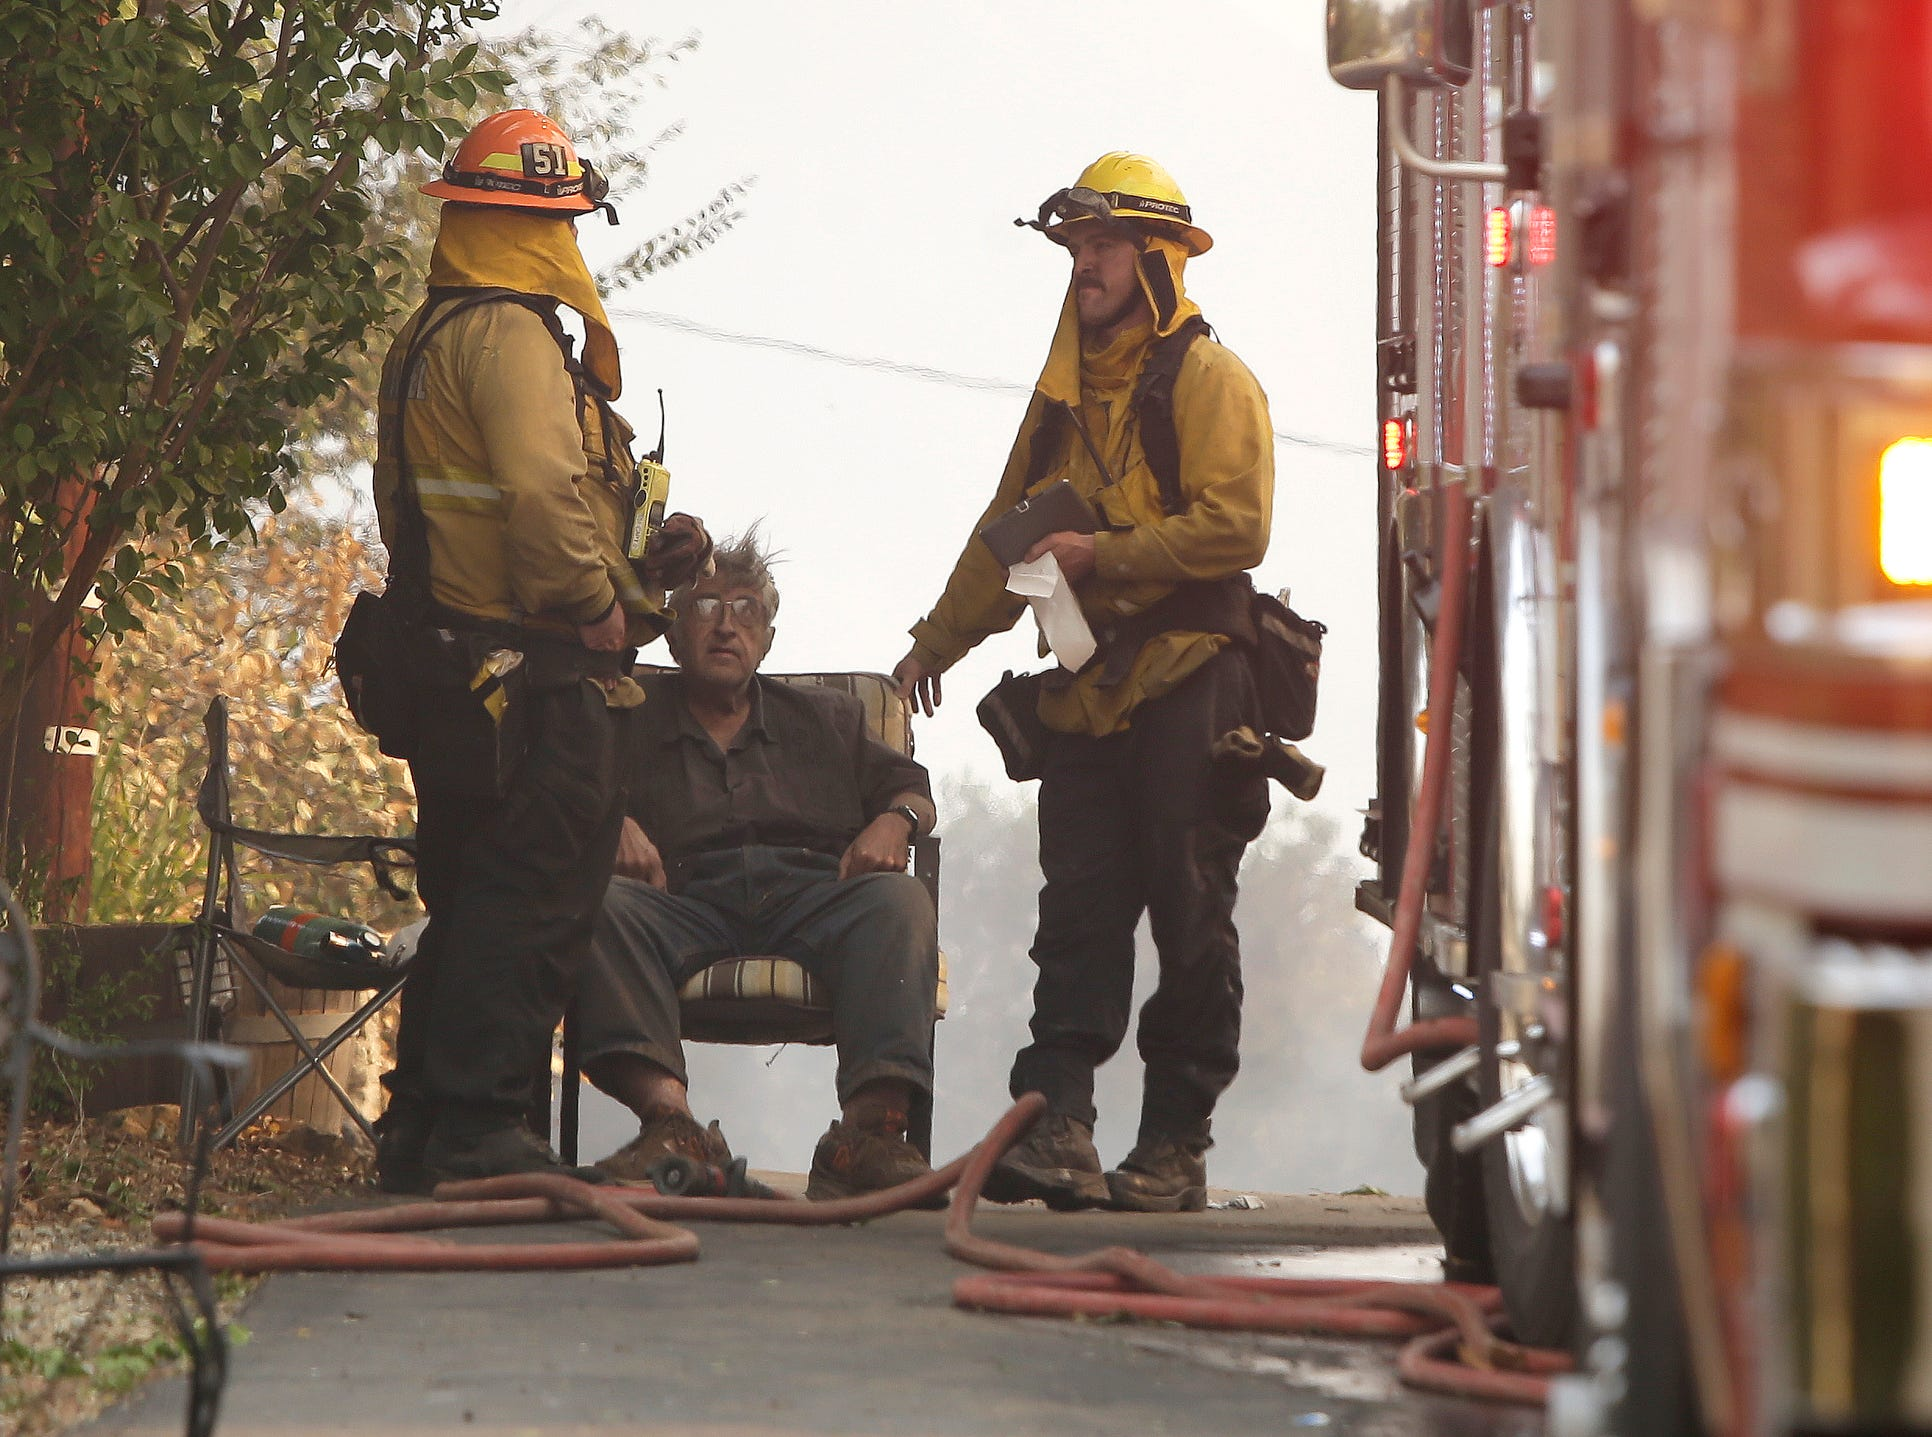 A homeowner who was overcome by smoke is attended to by firefighters as the Woolsey Fire swept through the Malibu Lake community.  The Woolsey Fire has led to the evacuation order for 75,000 homes. Fires across California fueled by very dry conditions and warm strong Santa Ana winds have destroyed structures and caused fatalities.